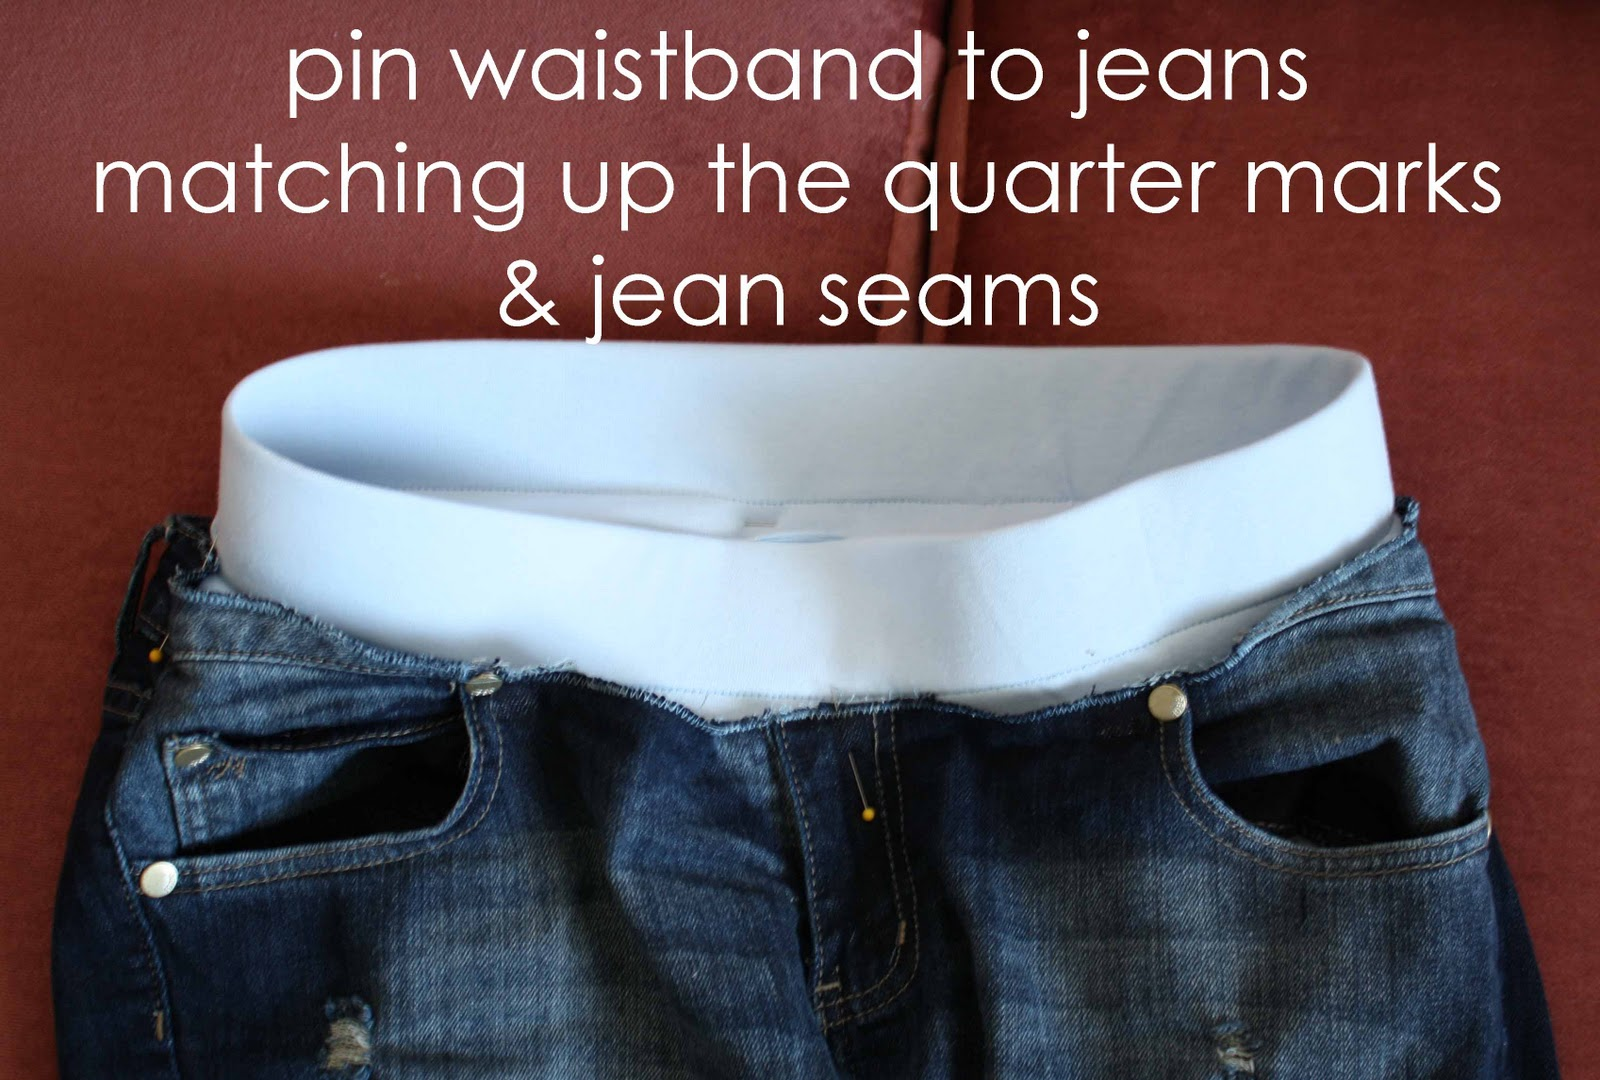 Running With Scissors: How To Add Maternity Band to Jeans